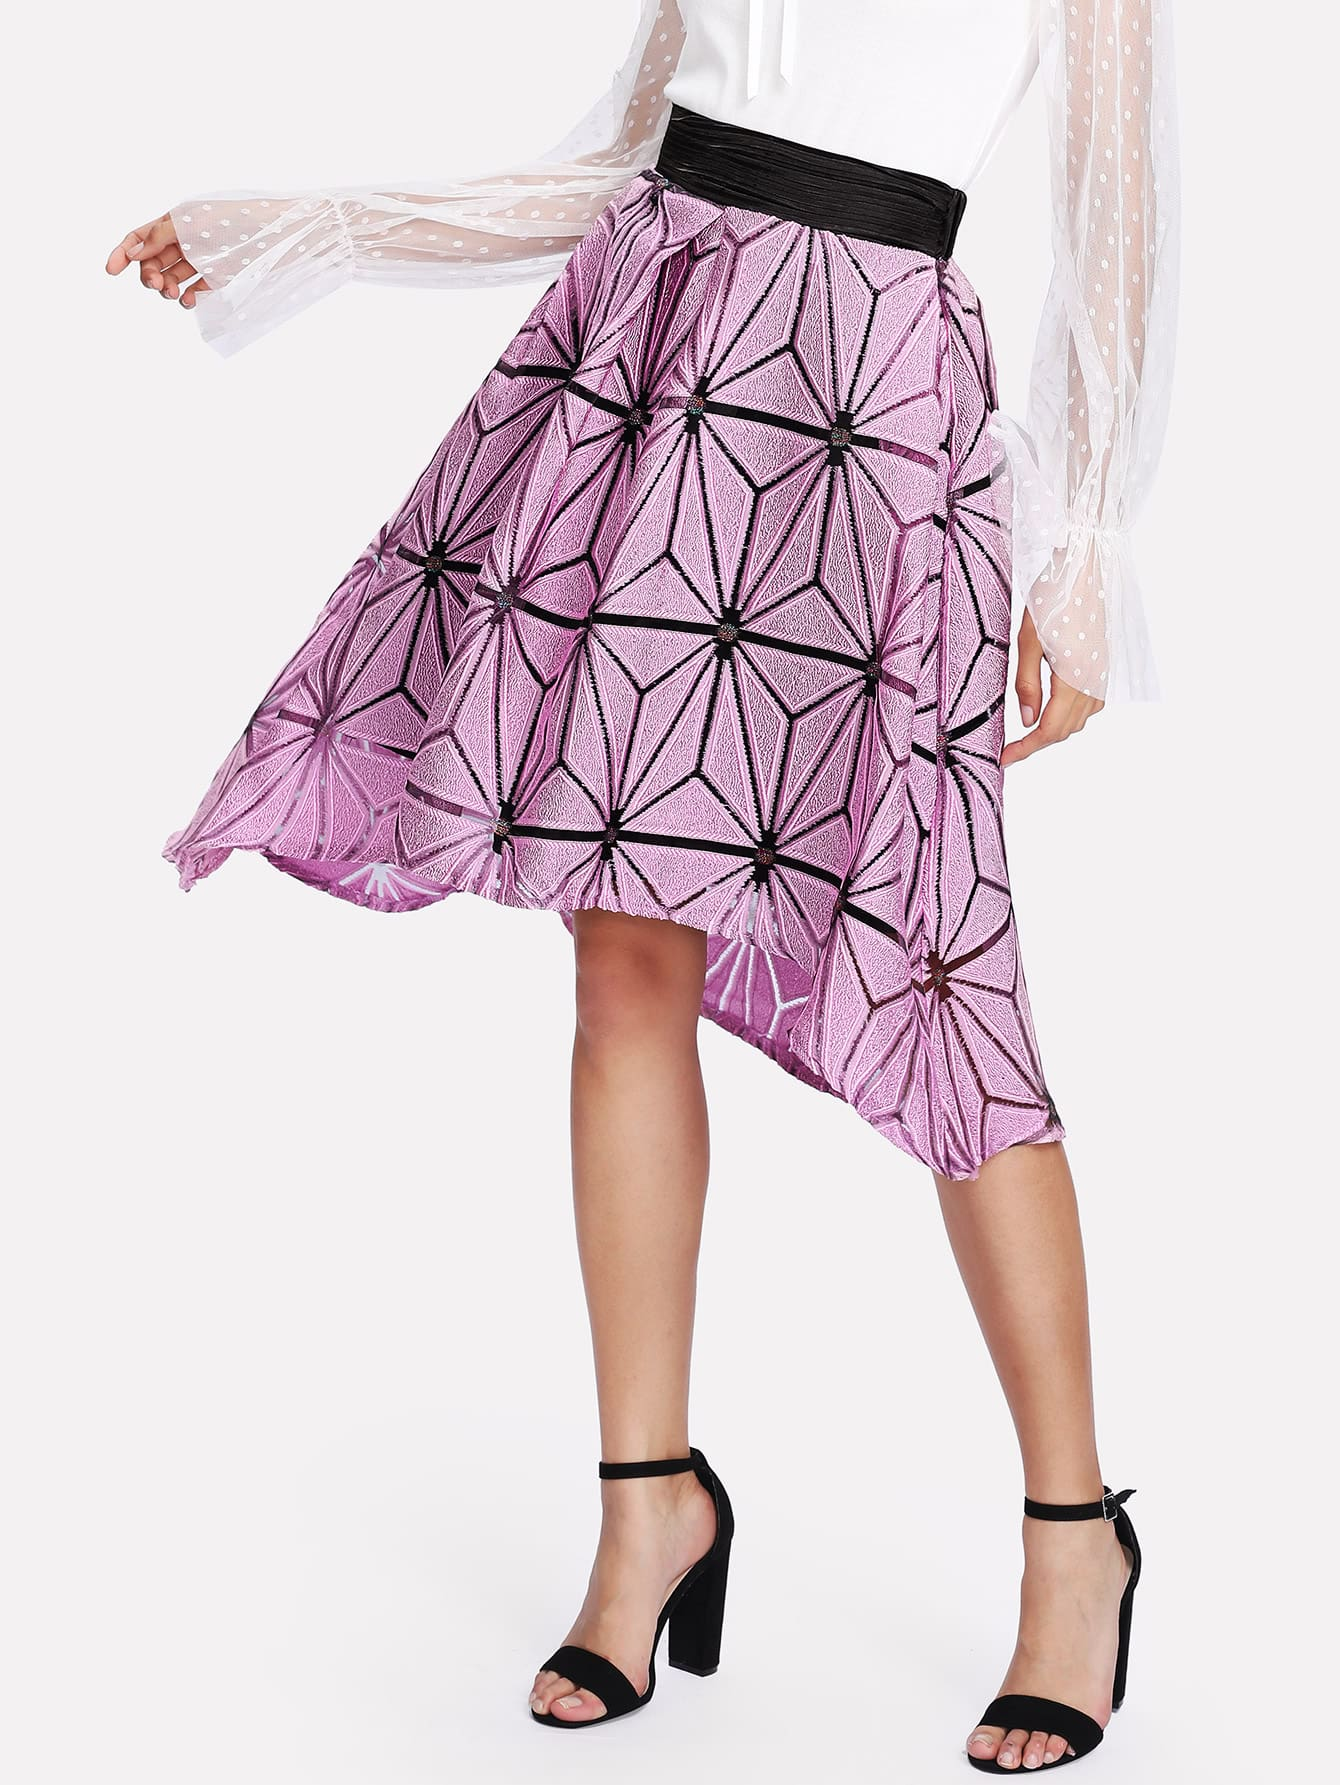 Geo Lace Insert Dip Hem Skirt lace insert fitted faux leather skirt